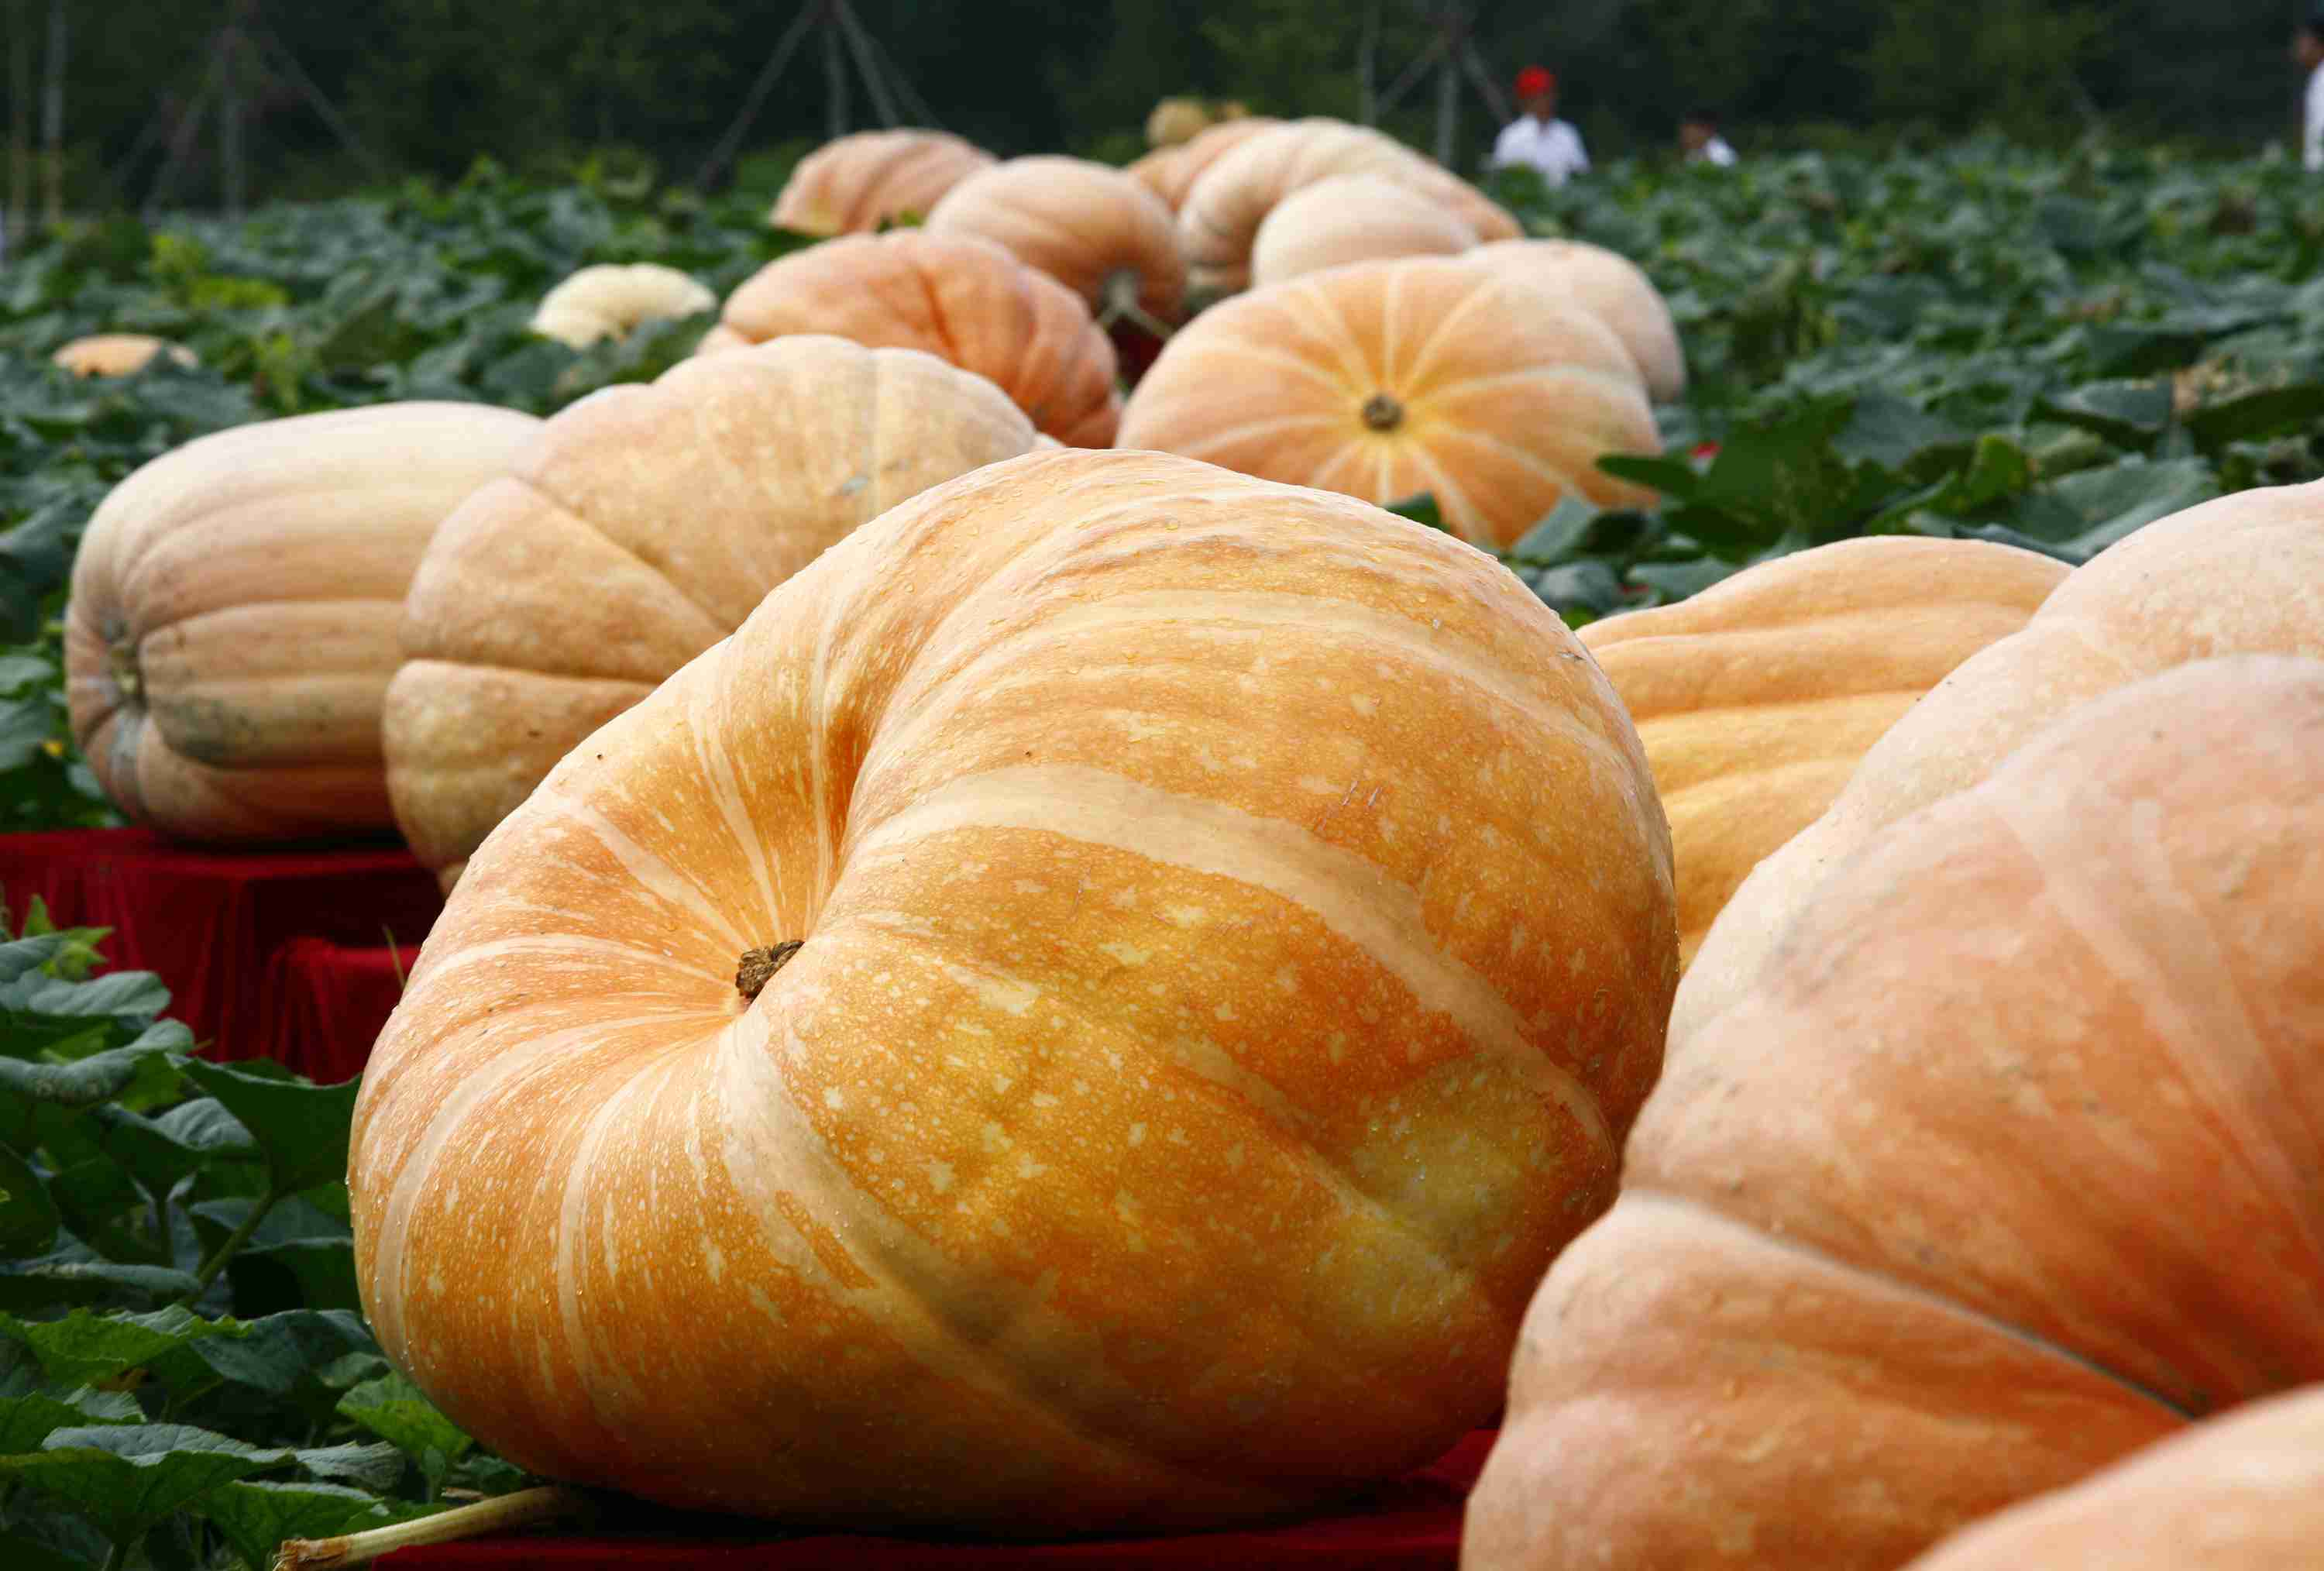 Giant pumpkins in a field